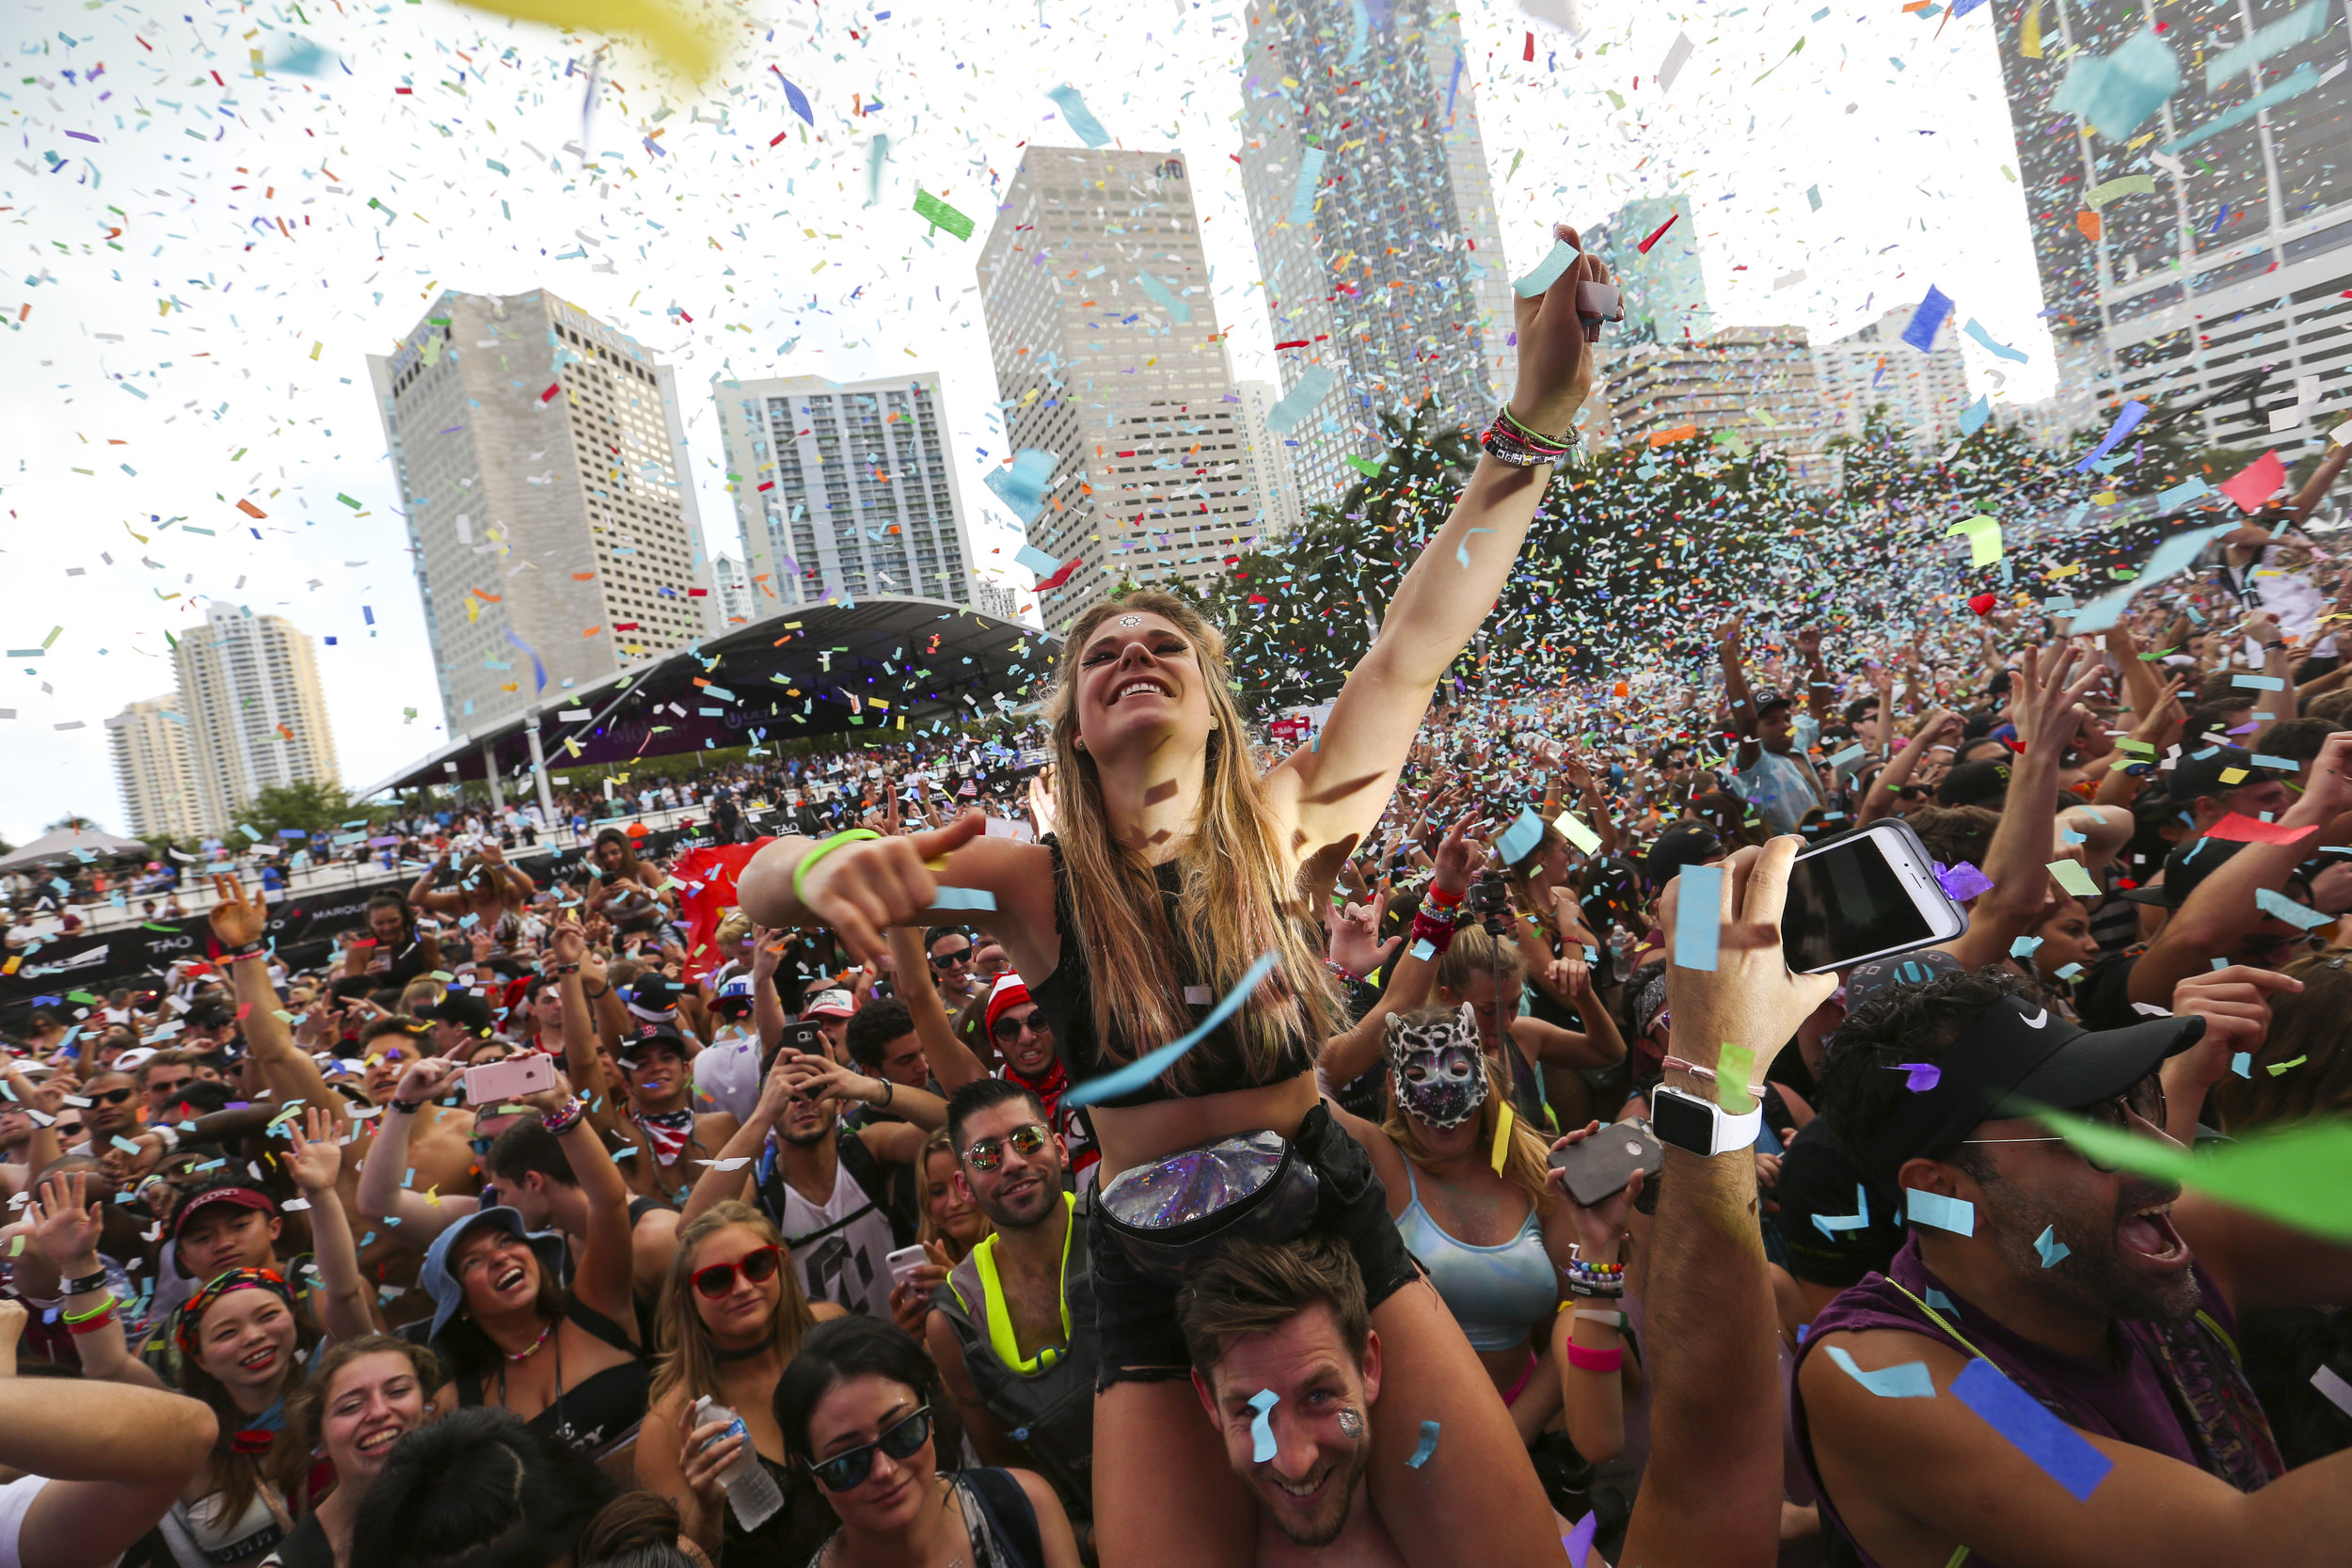 Alina Baum, 24, from Germany, dances as confetti sprinkles the crowd during the third day of Ultra Music Festival in downtown Miami on Sunday, March 26, 2017.